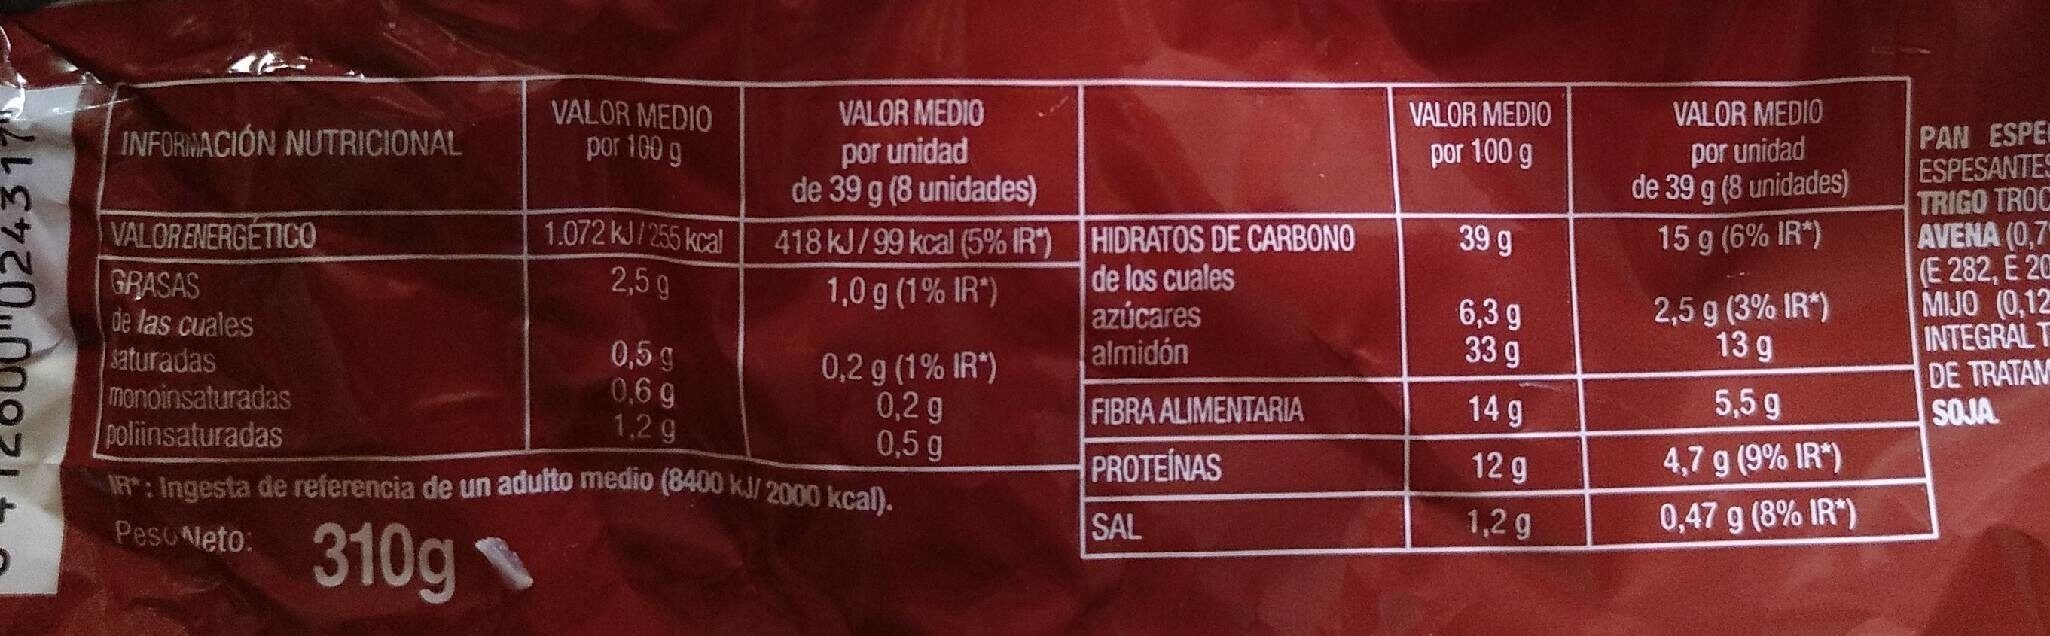 Sandwich Thins 8 cereales - Nutrition facts